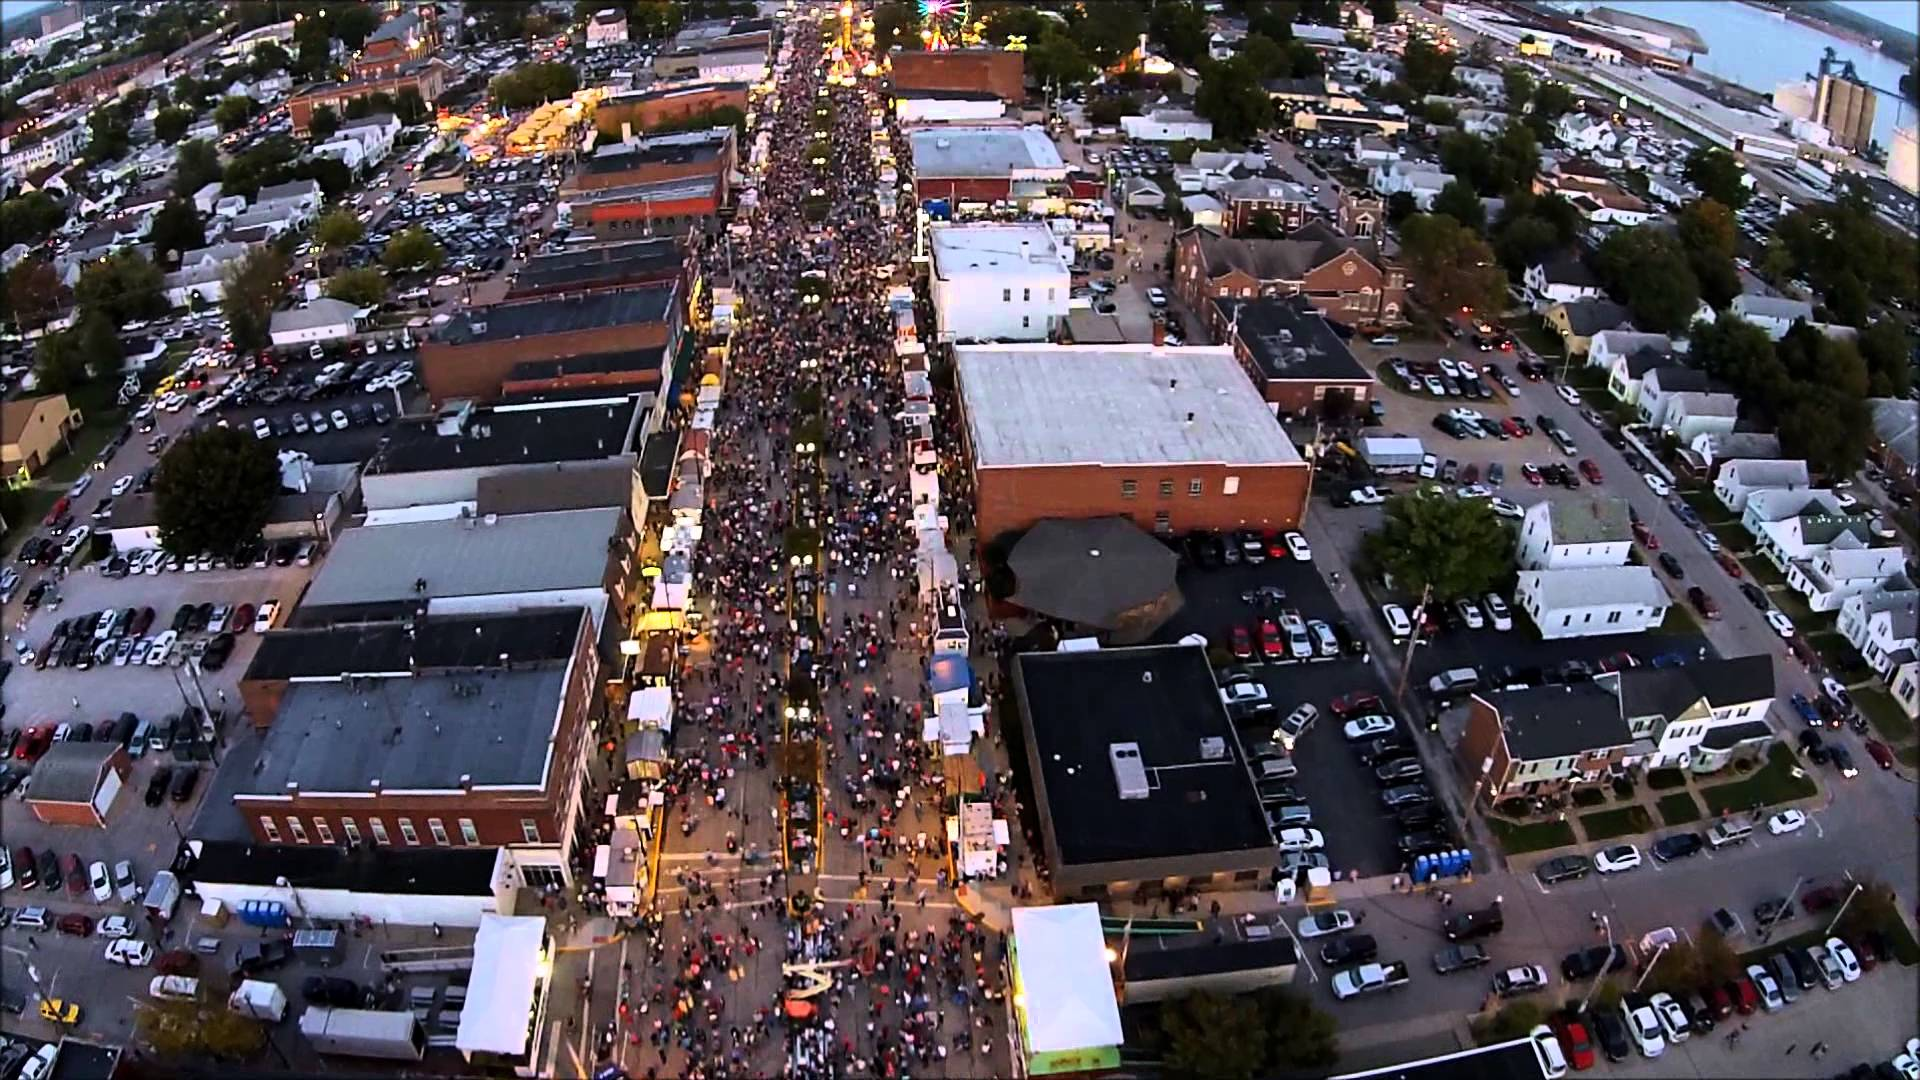 Photo of Tri-State Gears up for Annual West Side Nut Clubs Fall Festival